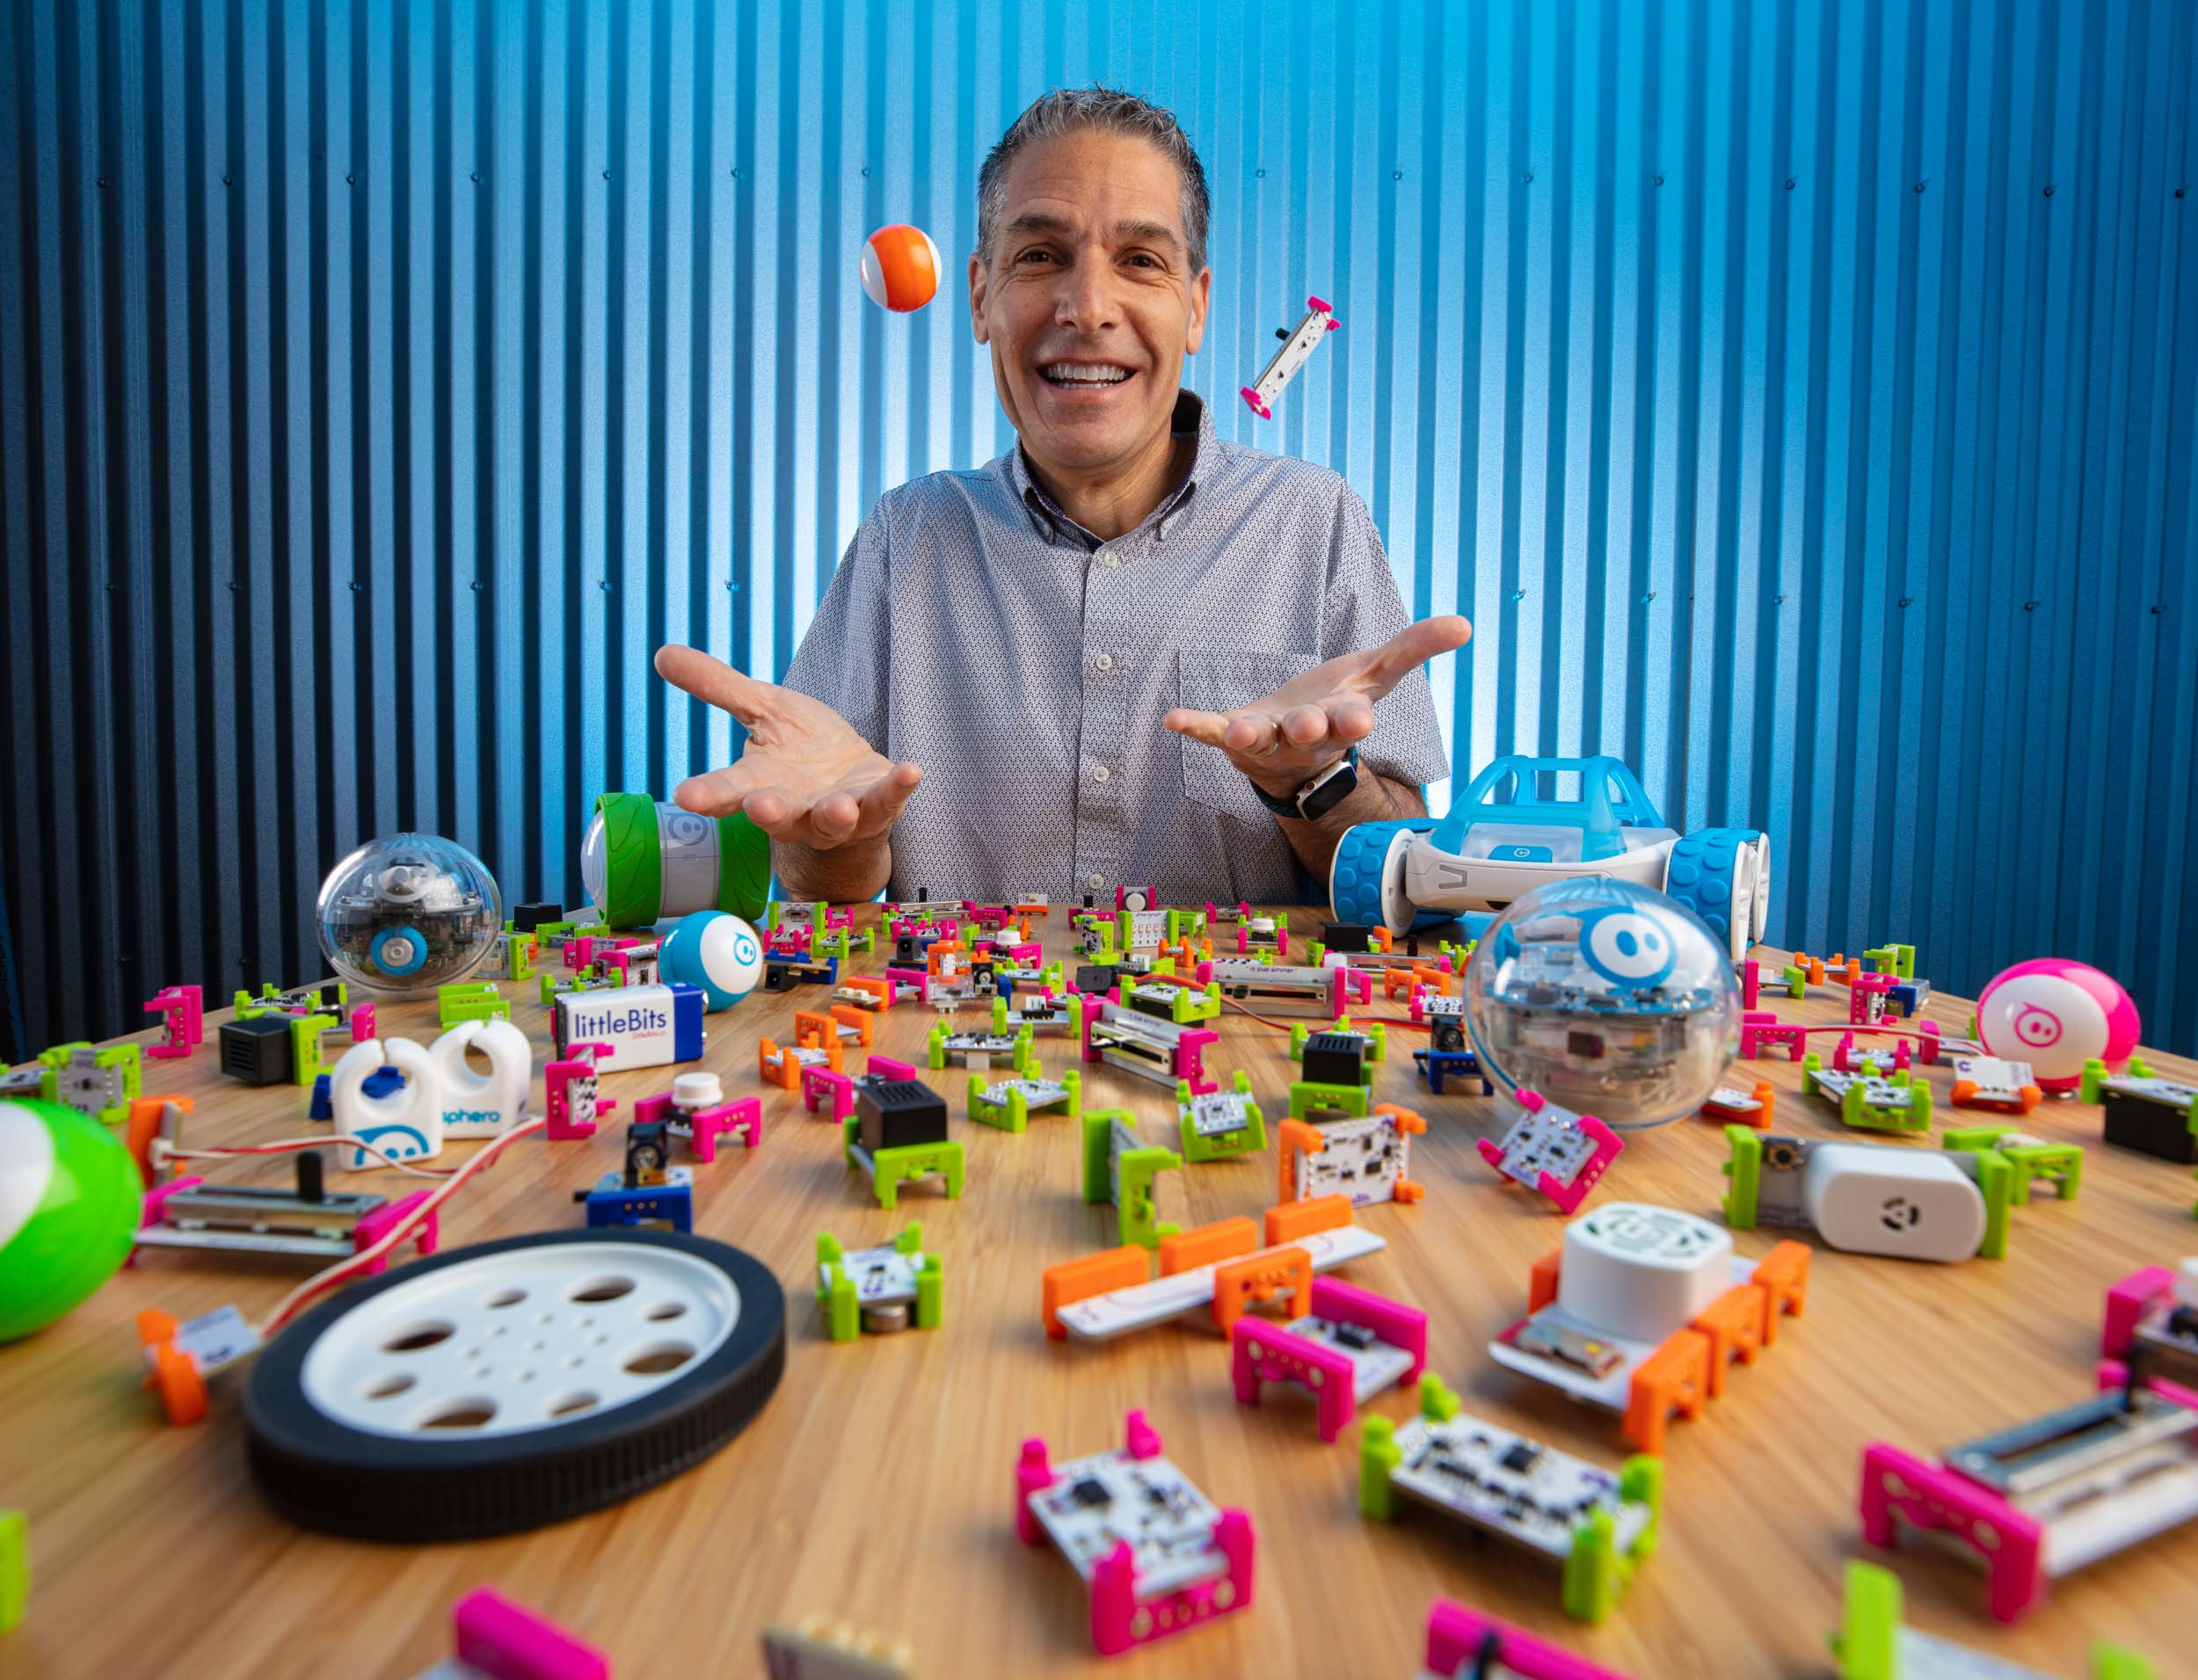 Sphero and LittleBits CEO Paul Berberian editorial photo.